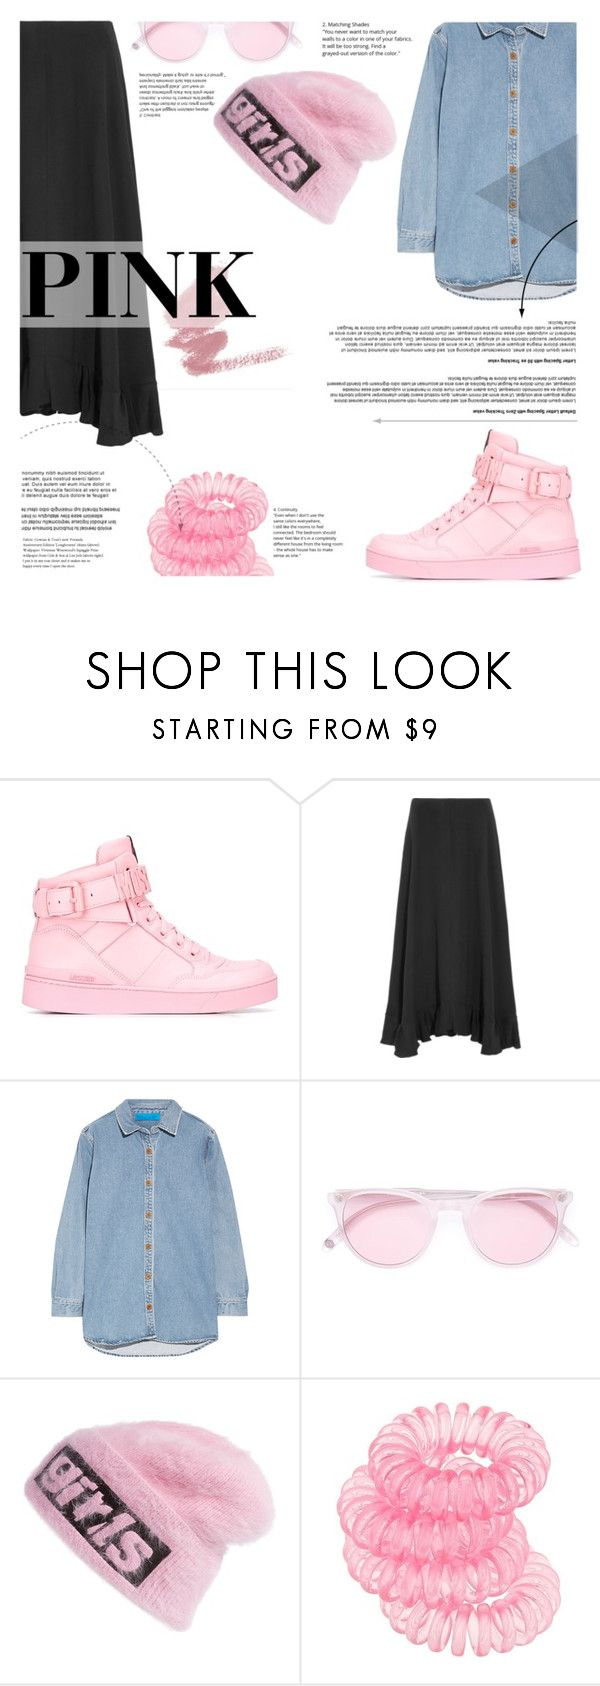 """""""№"""" by sophiateresa ❤ liked on Polyvore featuring Moschino, Chloé, M.i.h Jeans, Garrett Leight, Alexander Wang, Miss Selfridge, Pink and fashionset"""